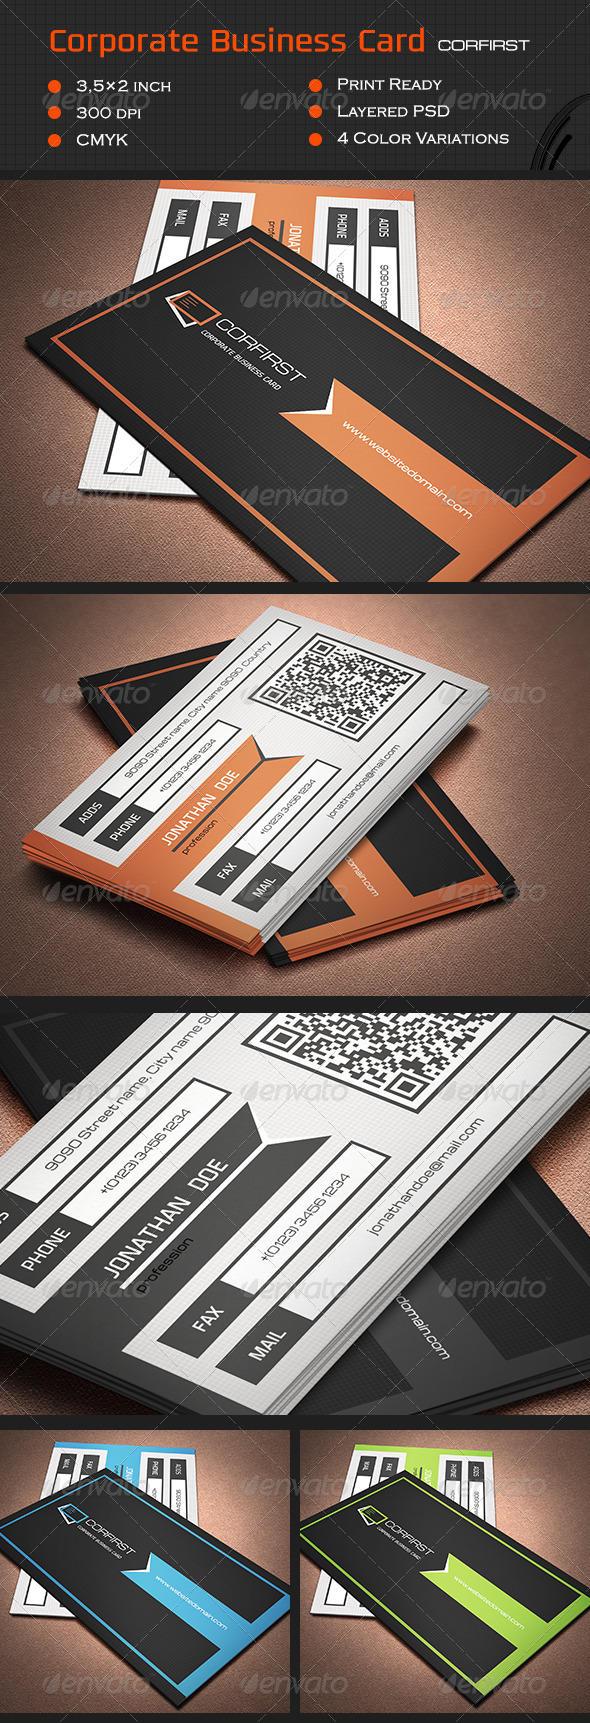 GraphicRiver Corporate Business Card Cor1 6964954